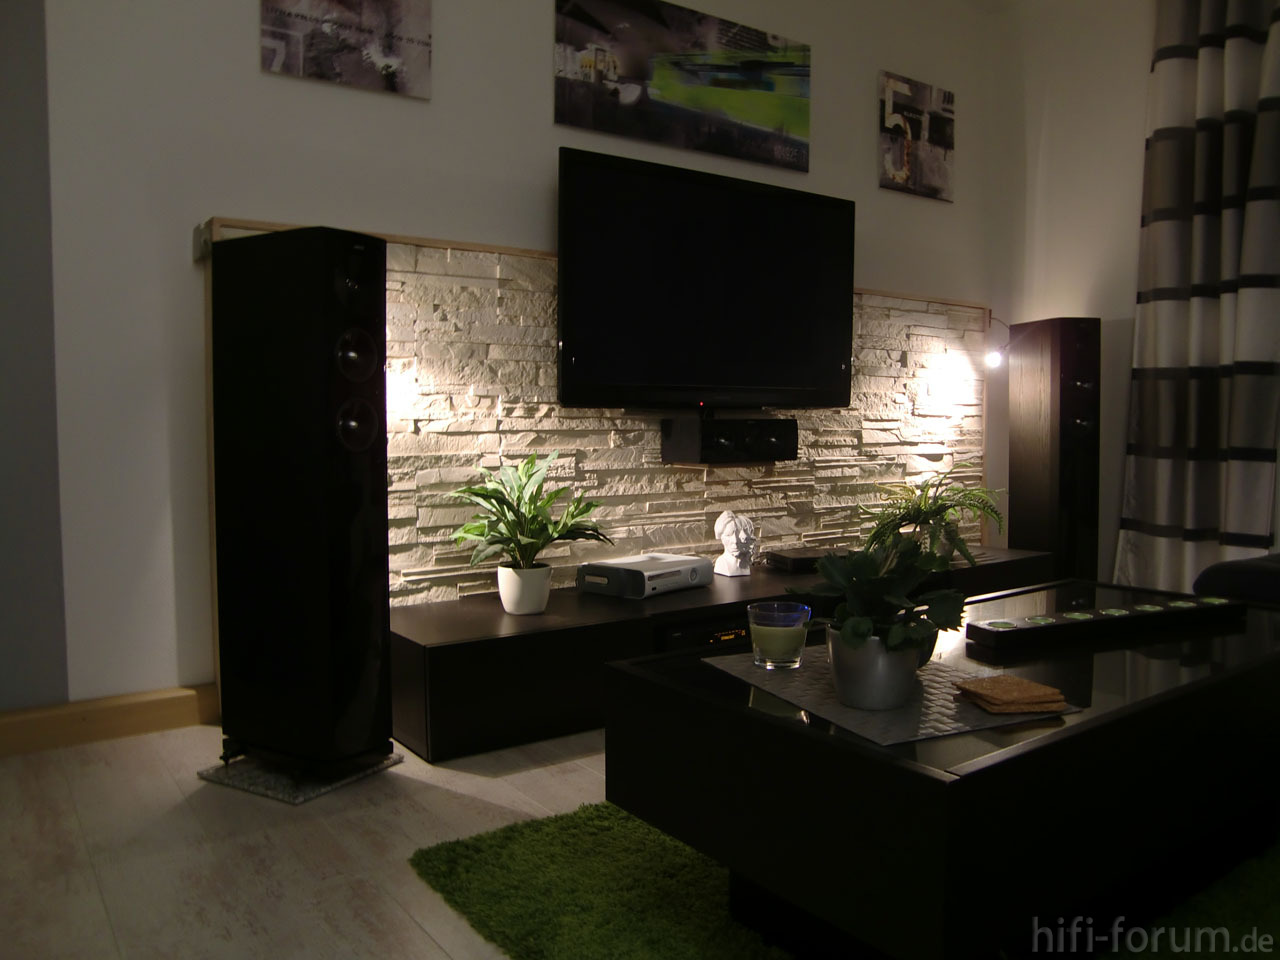 cimg1086 heimkino surround hifi bildergalerie. Black Bedroom Furniture Sets. Home Design Ideas